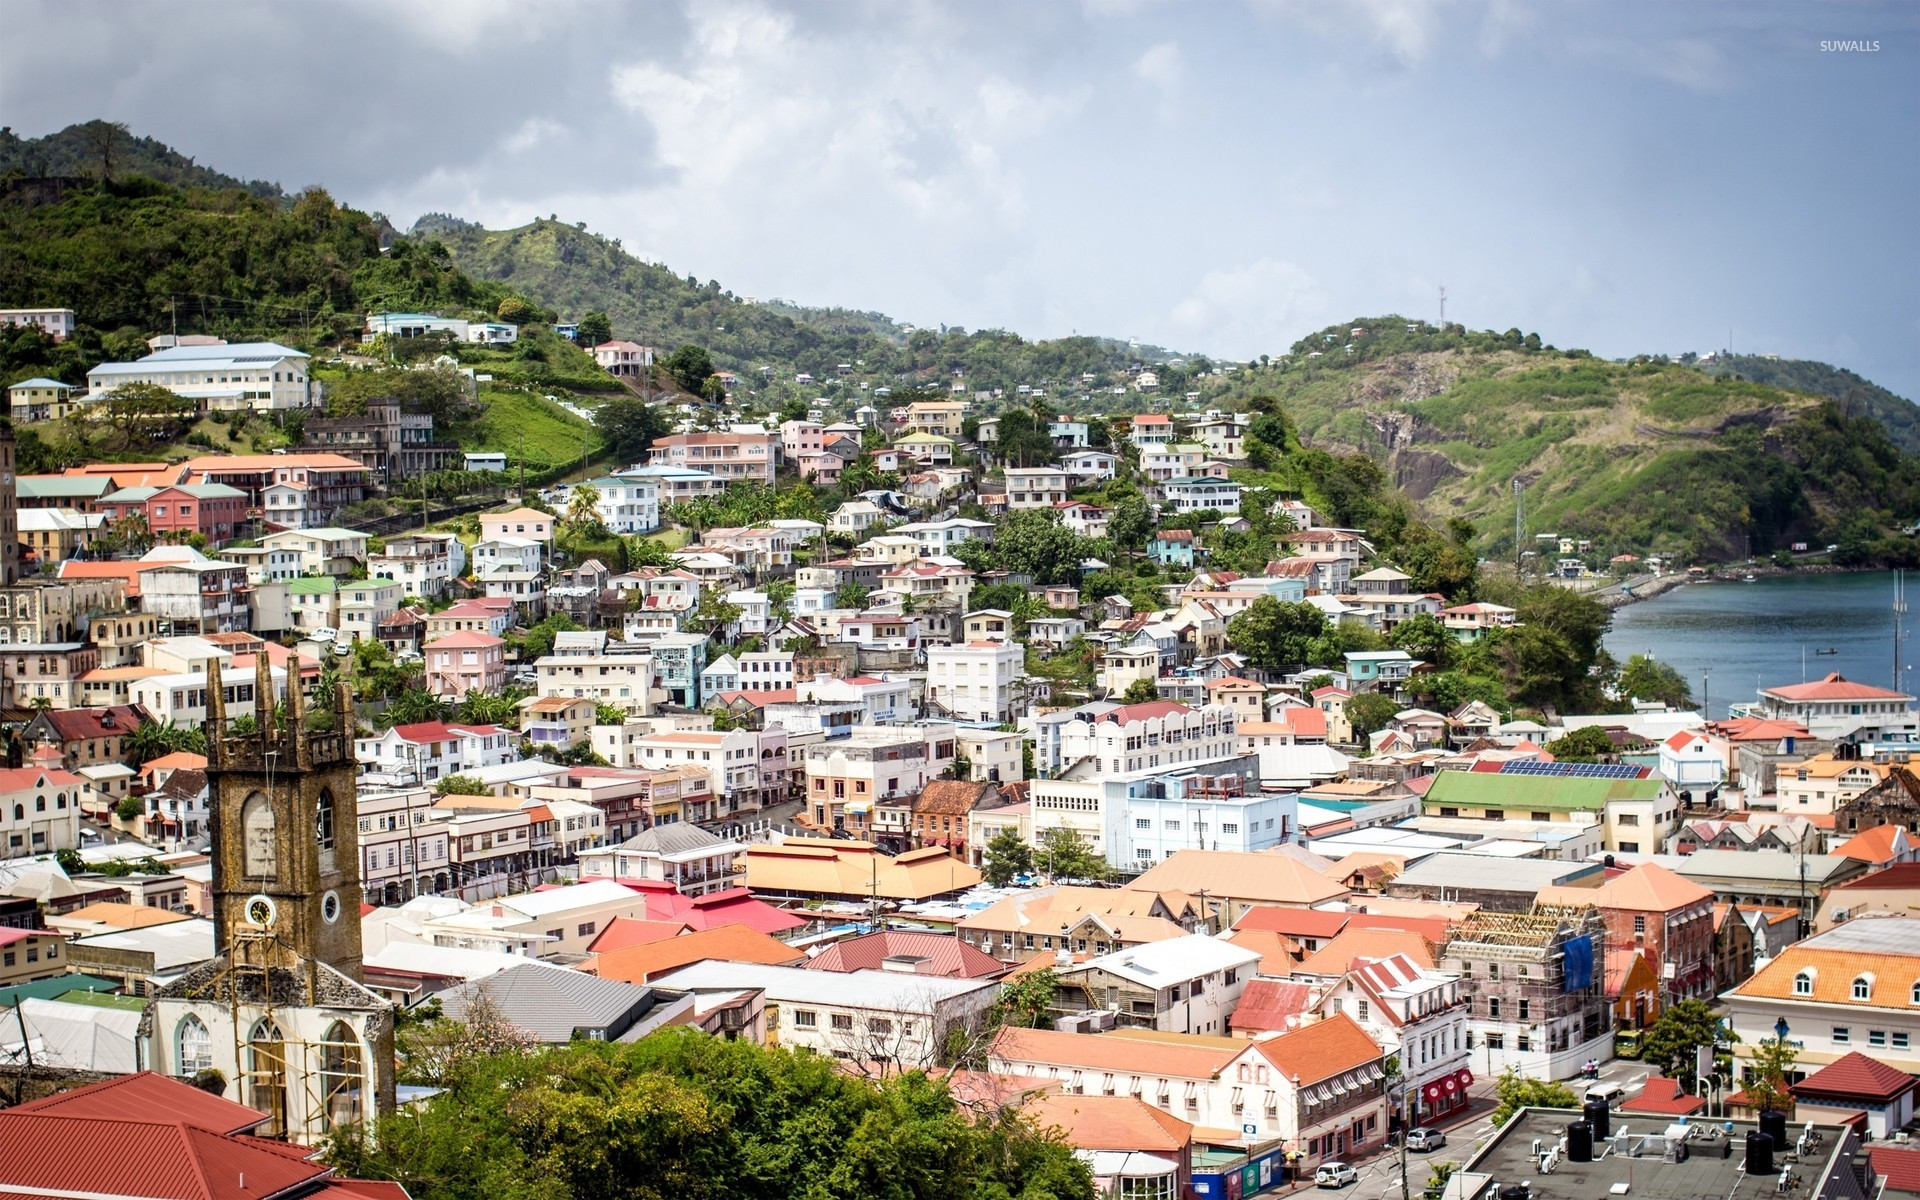 St Georges capital of Grenada wallpaper   World 1920x1200